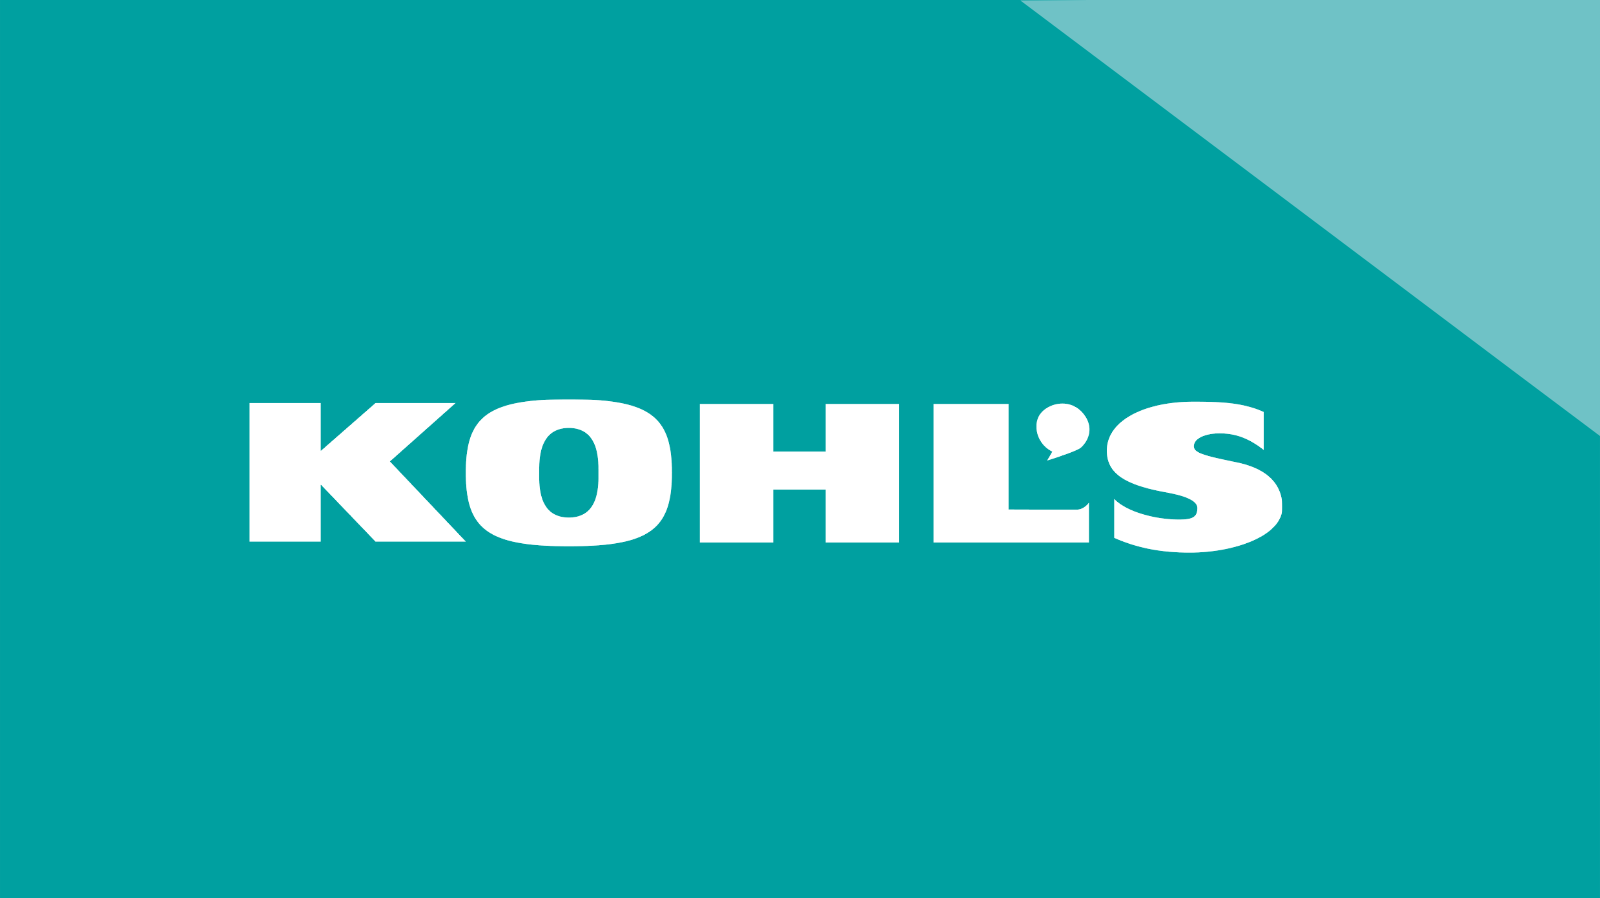 Is Kohls Open On Christmas Eve.Kohl S Offers Last Minute Holiday Shoppers Around The Clock